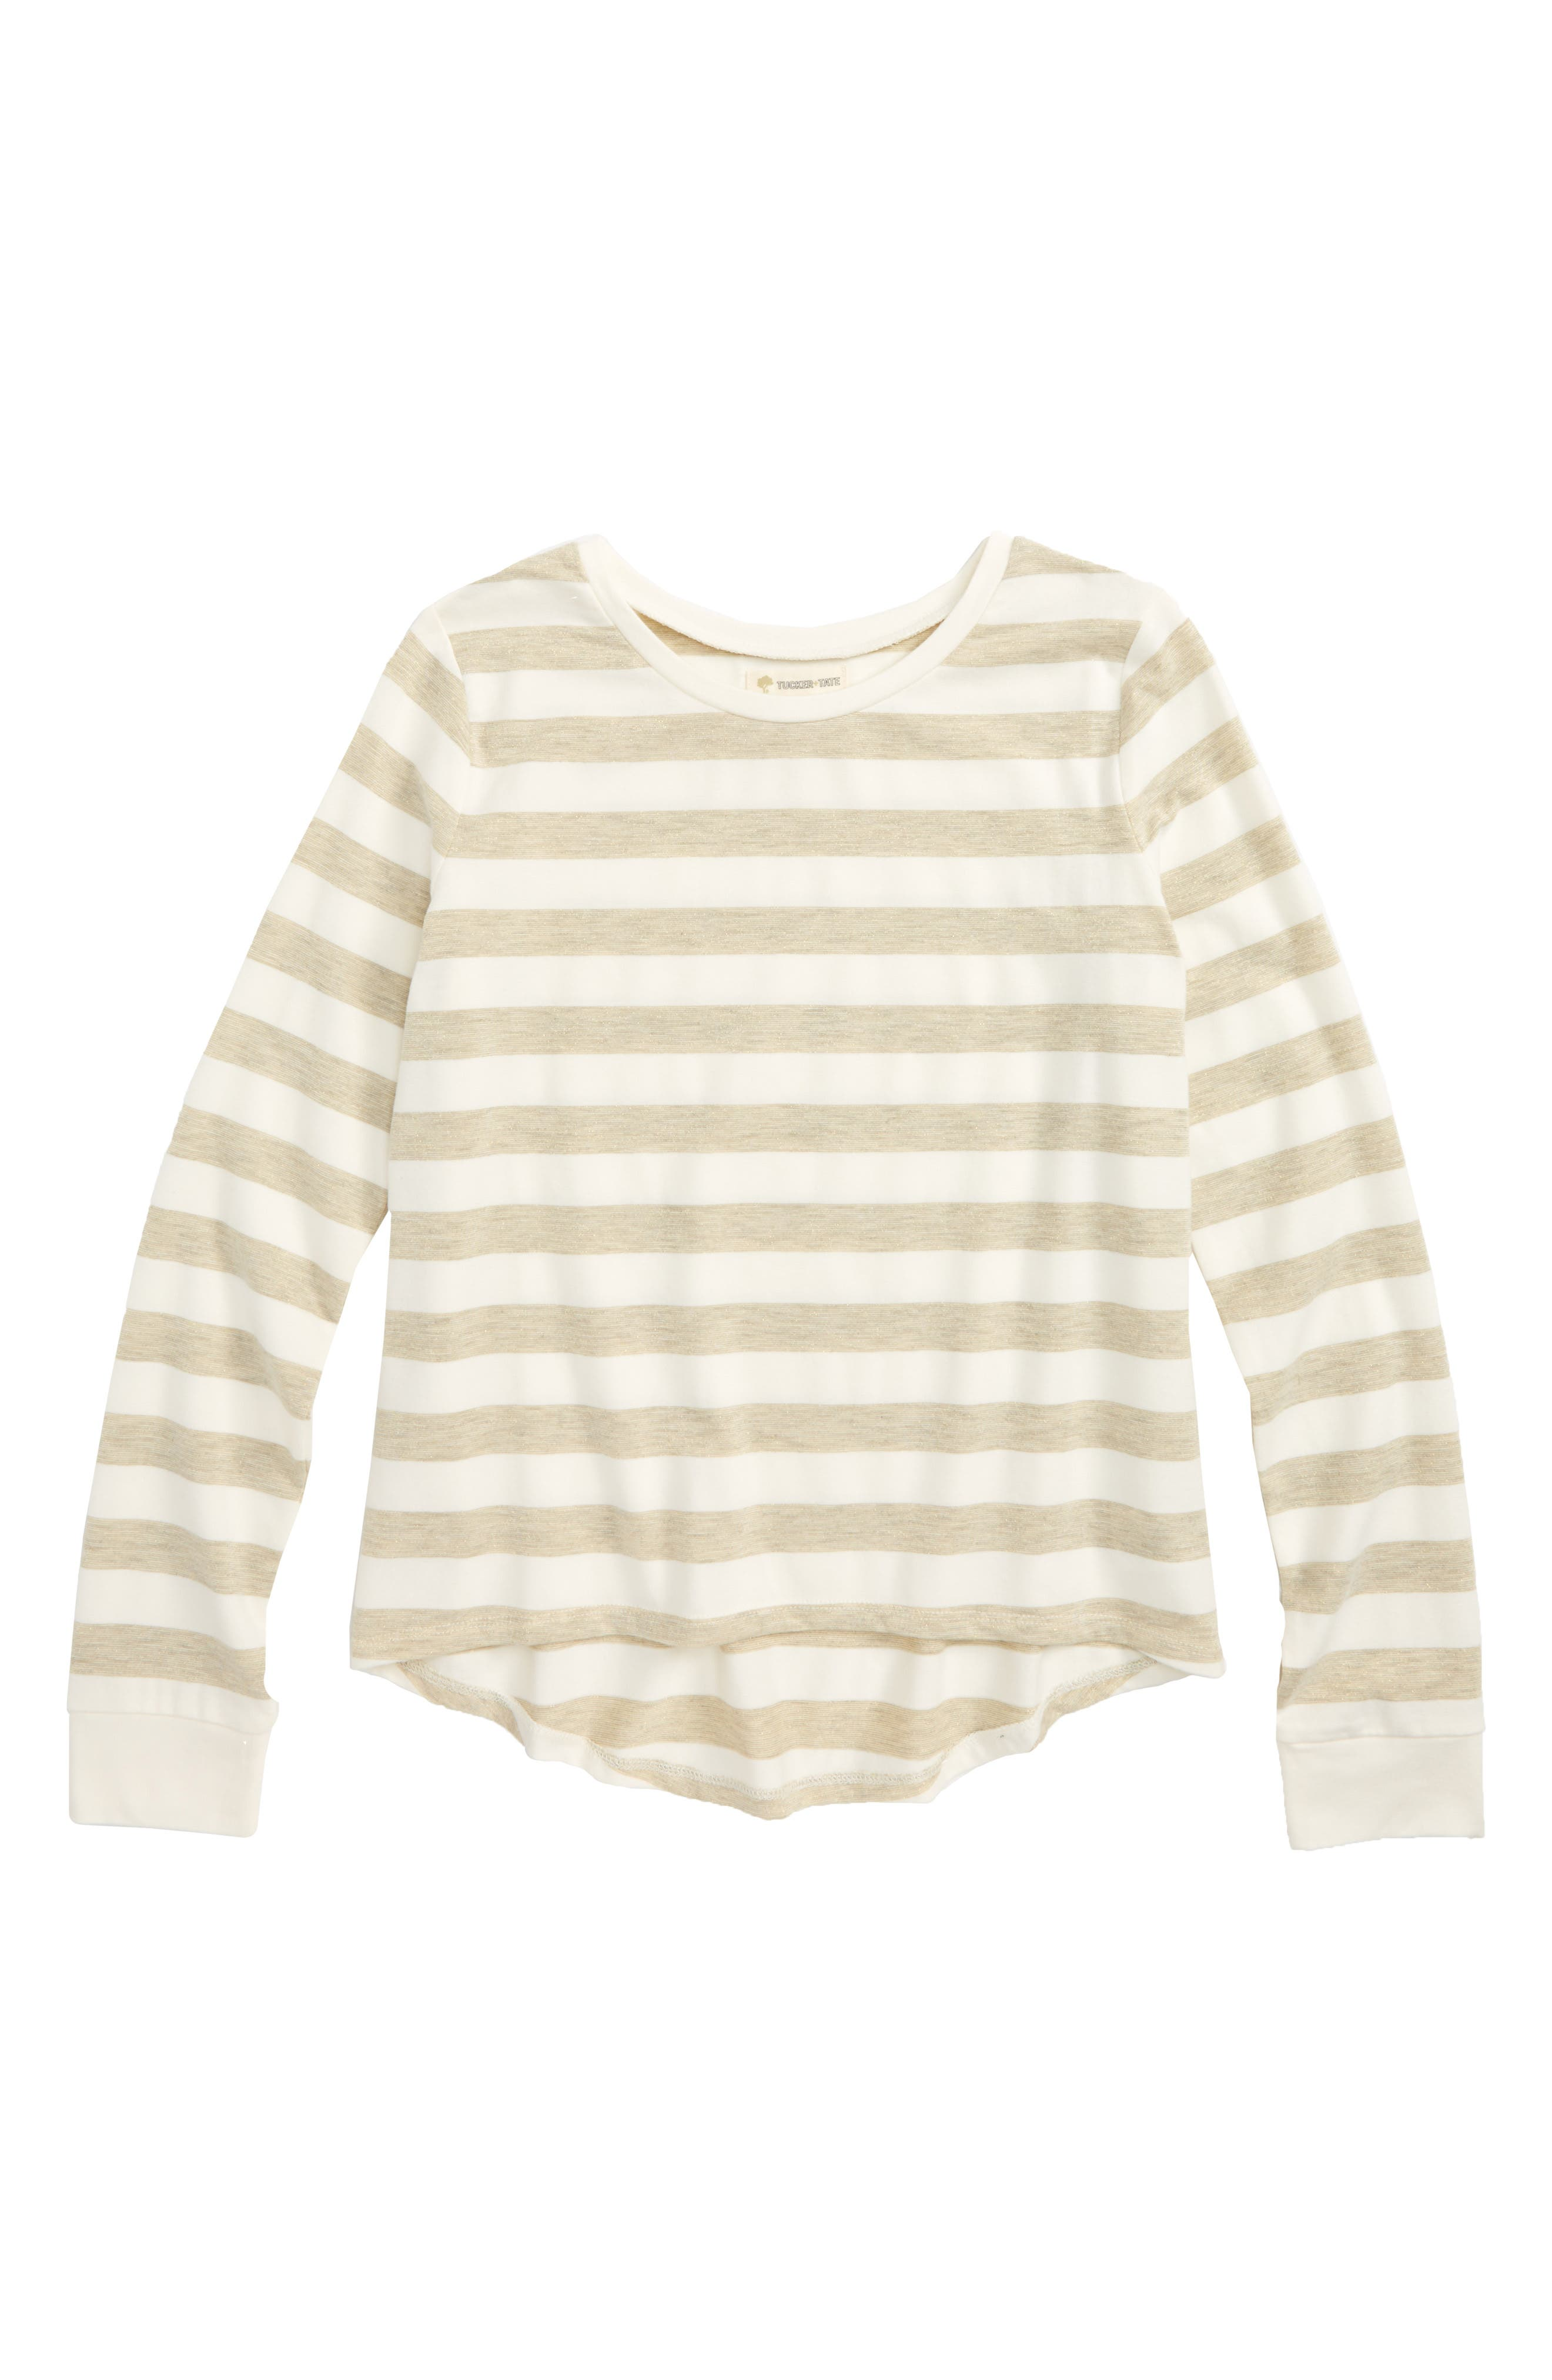 Alternate Image 1 Selected - Tucker + Tate Stripe Tee (Big Girls)